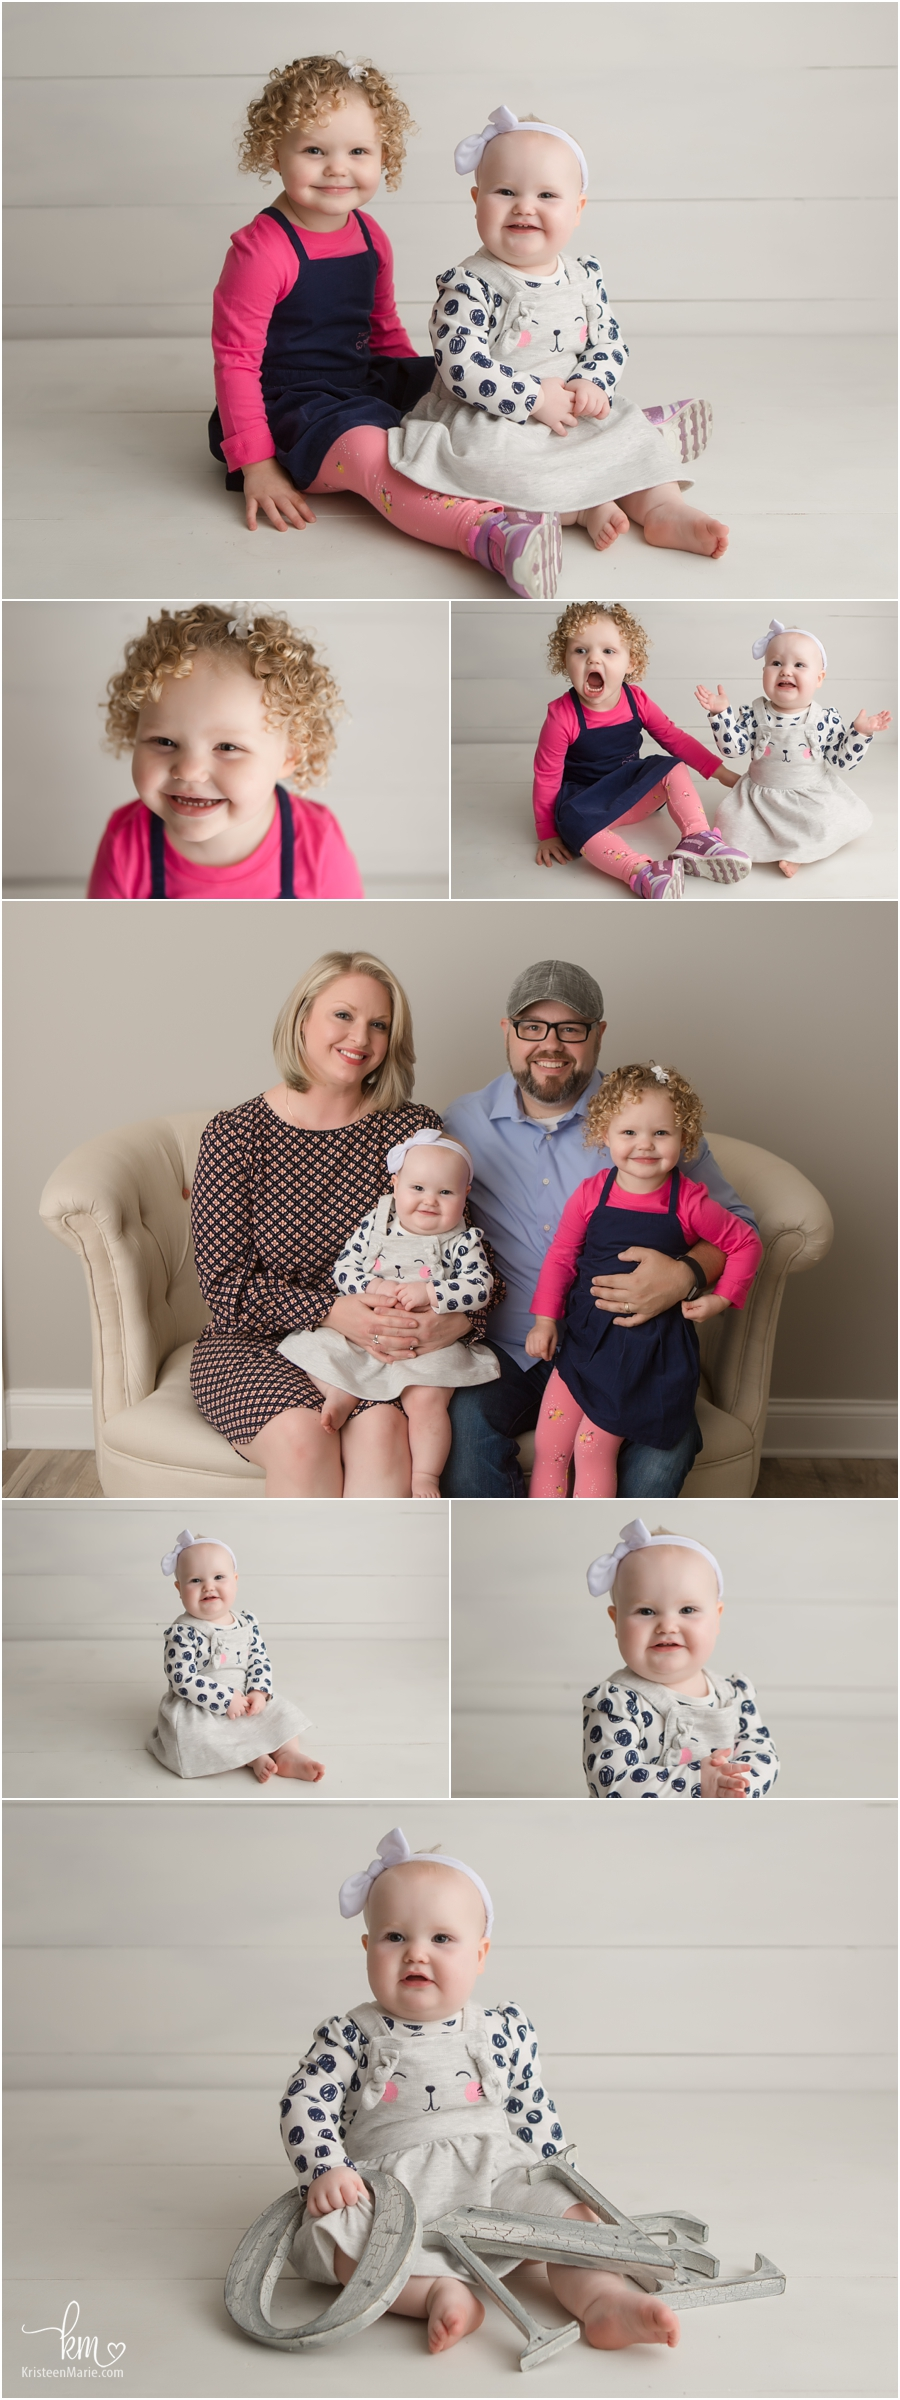 Indianapolis photograpy studio - family pictures